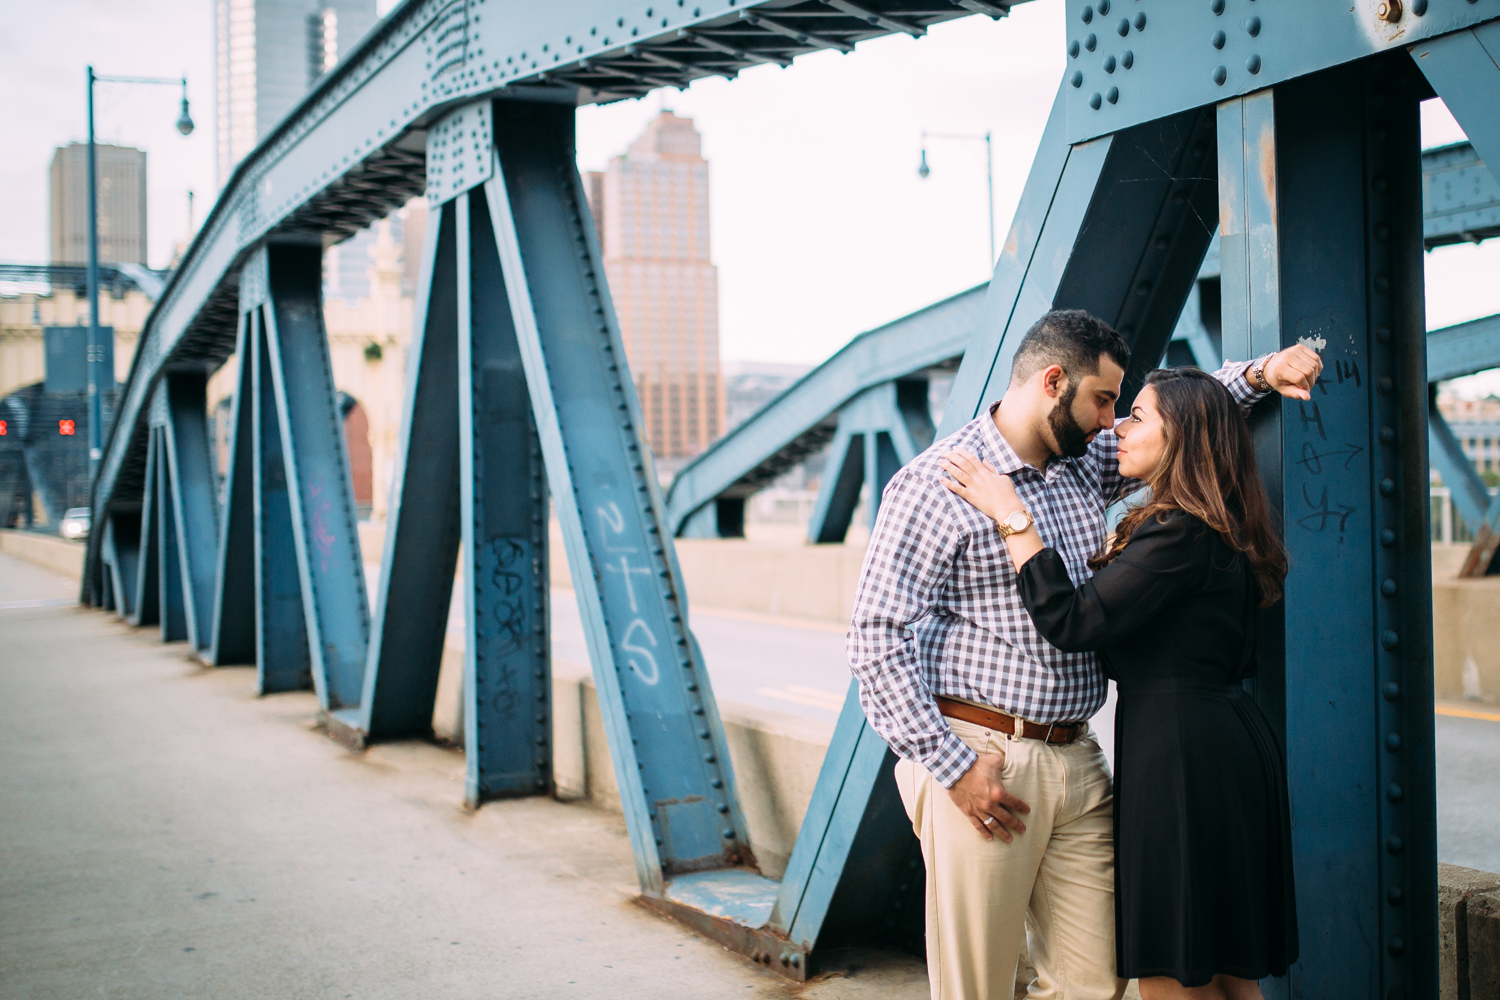 Ashley-reed-photography-pittsburgh-engagement-engagementphotography-engagementphotographer-stationsquare-statio-square-pittsburghengagementphotography-27.jpg